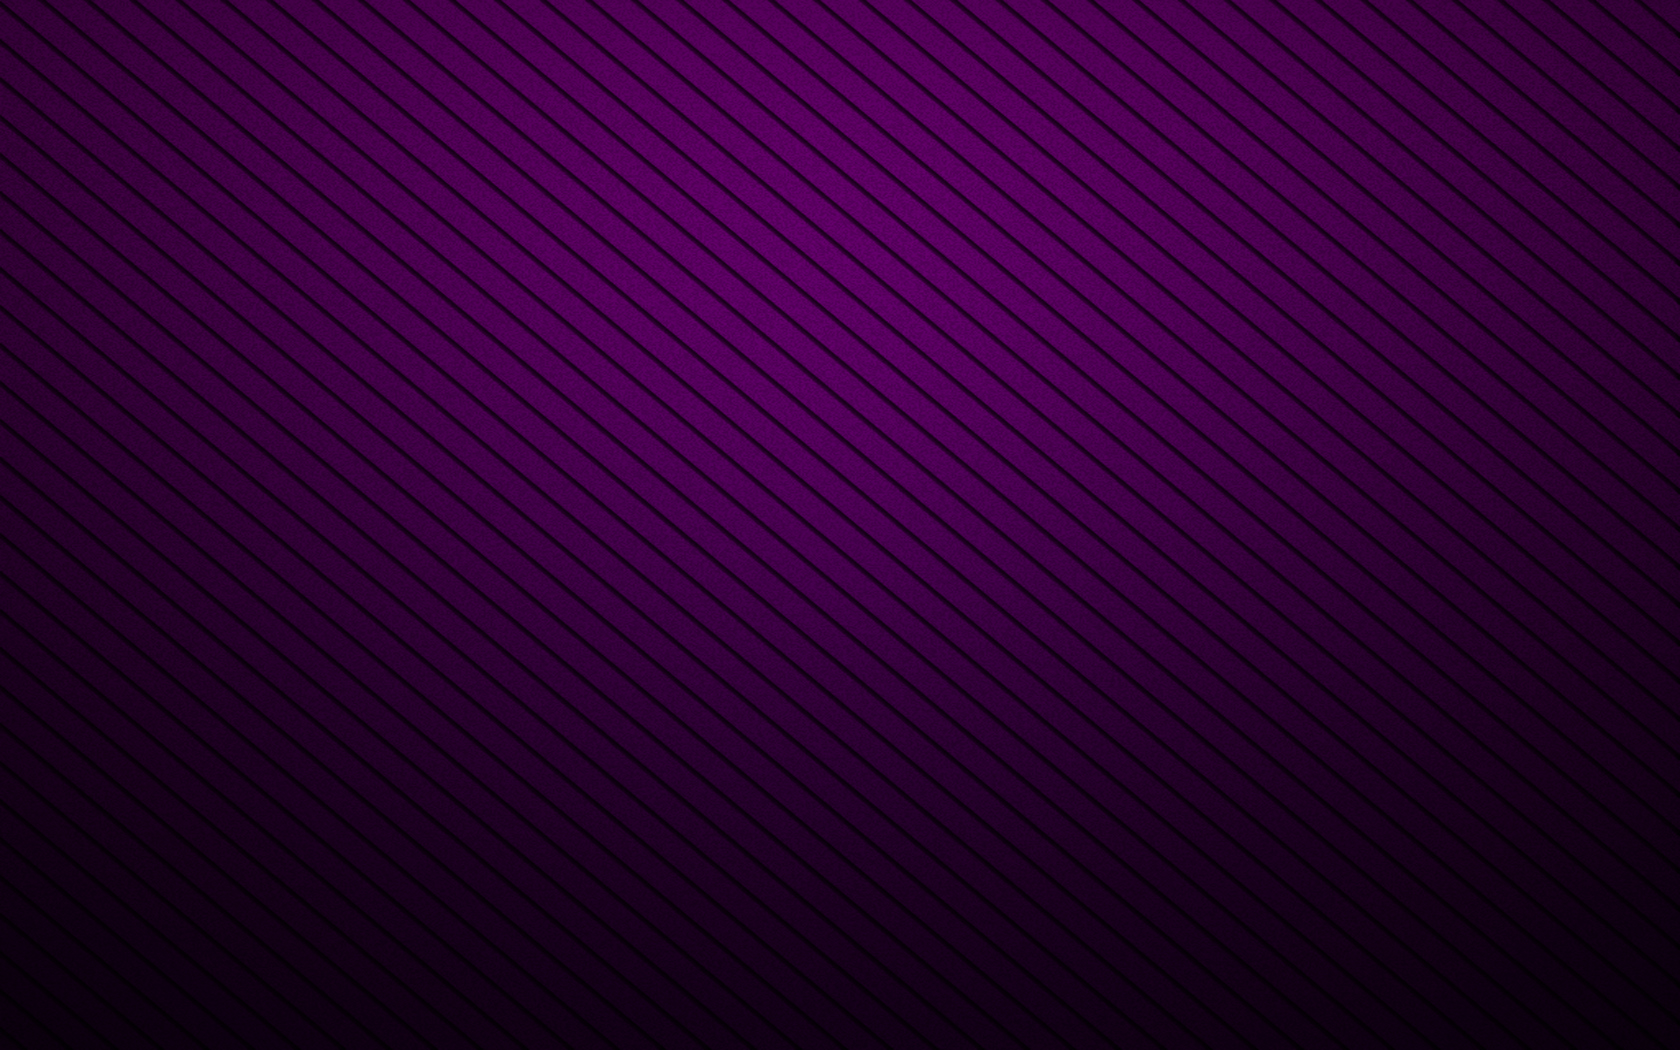 purple wallpaper 40204